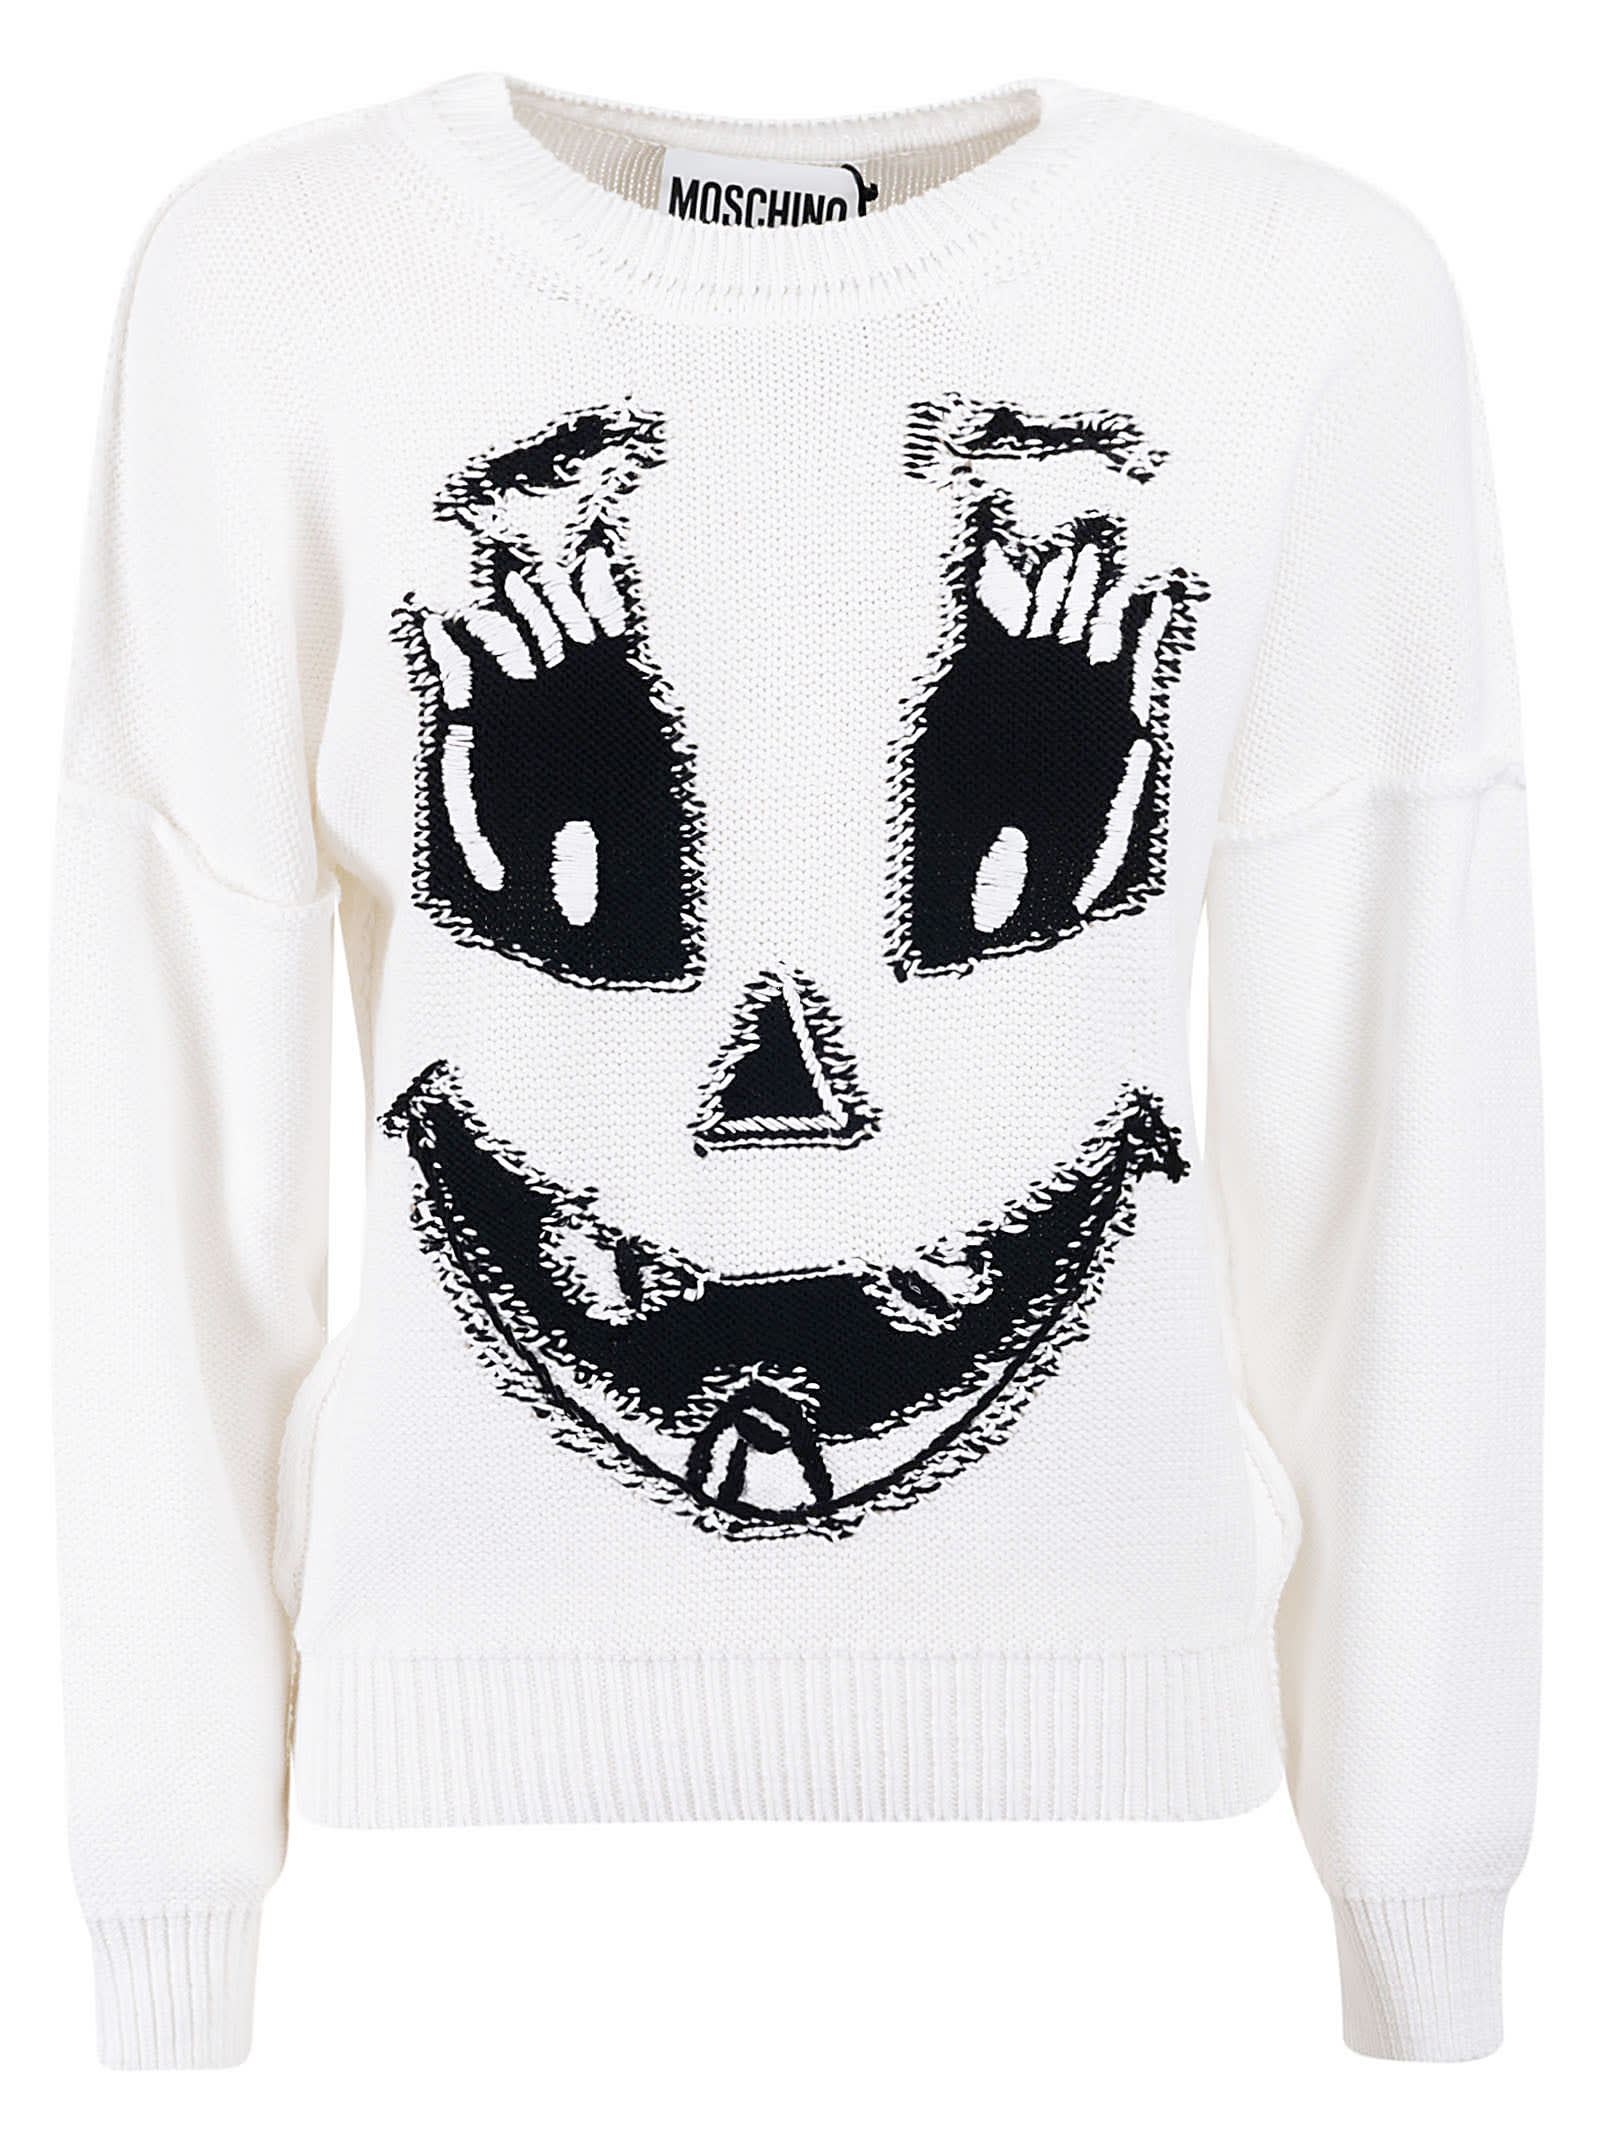 Moschino Rib Knit Sweatshirt